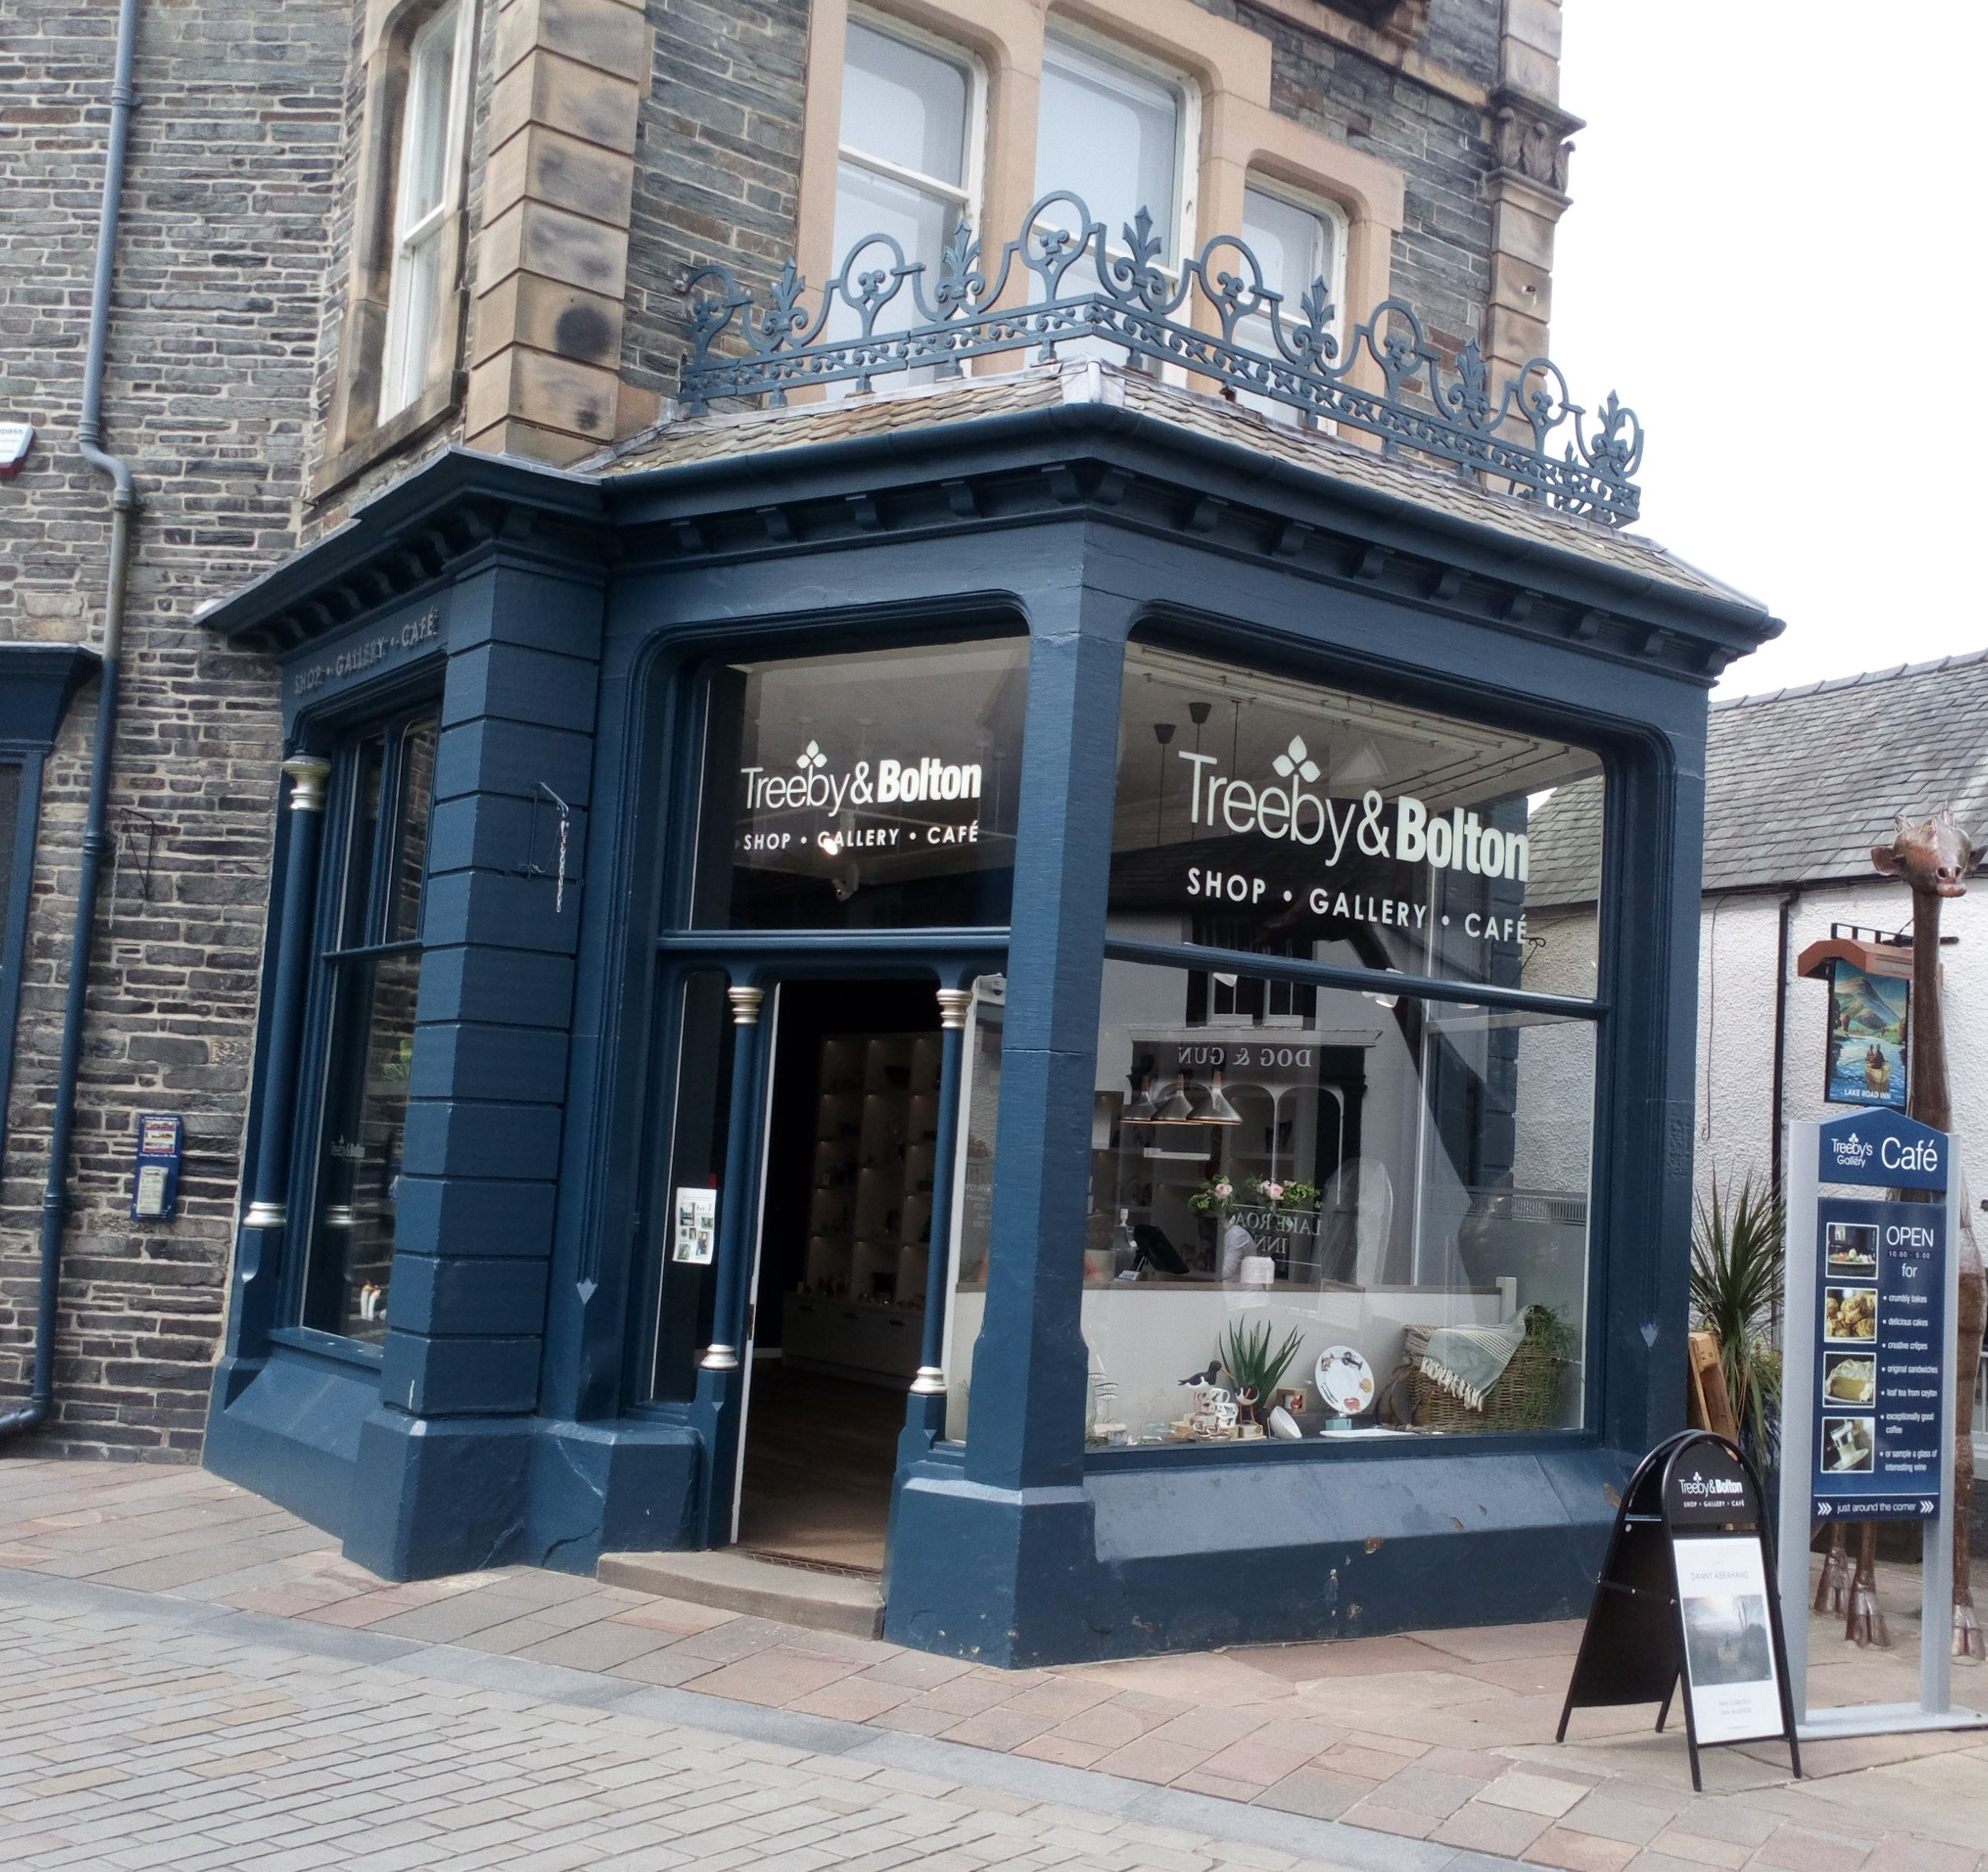 Treeby and Bolton    In this beautiful, contemporary gallery, visitors will find limited edition and original art and sculptures alongside art glass, bronze and interior accessories. Treeby & Bolton's ever-changing programme of exhibitions offers an eclectic selection of art from a diverse portfolio of leading artists. Downstairs from the gallery, customers can relax in the stylish surroundings of Treeby's café for breakfast, craft coffee, light lunches and plenty of homebaked cakes and scones. There is also outside seating for when the sun is shining.  Lake Road, Keswick, CA12 5BX  017687 72443  twitter.com/treebybolton